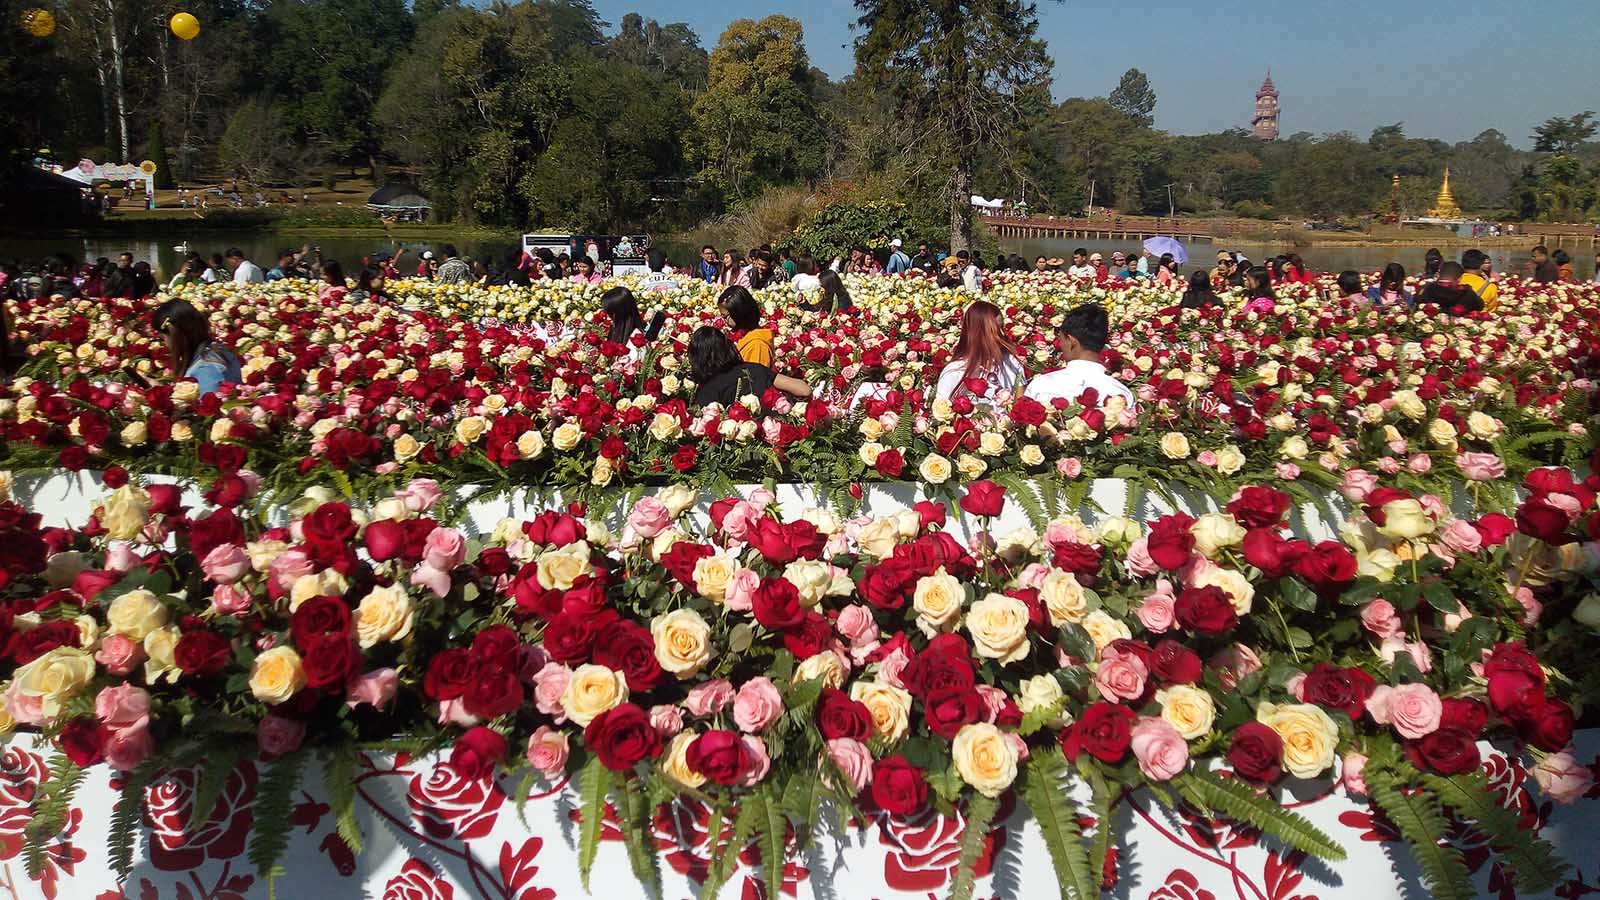 More than 600,000 flowering  plants are being showcased at the 14th PyinOoLwin flower festival inside the National Kandawgyi Gardens in PyinOoLwin. Photo: Thet Naing (Pyin Oo Lwin)